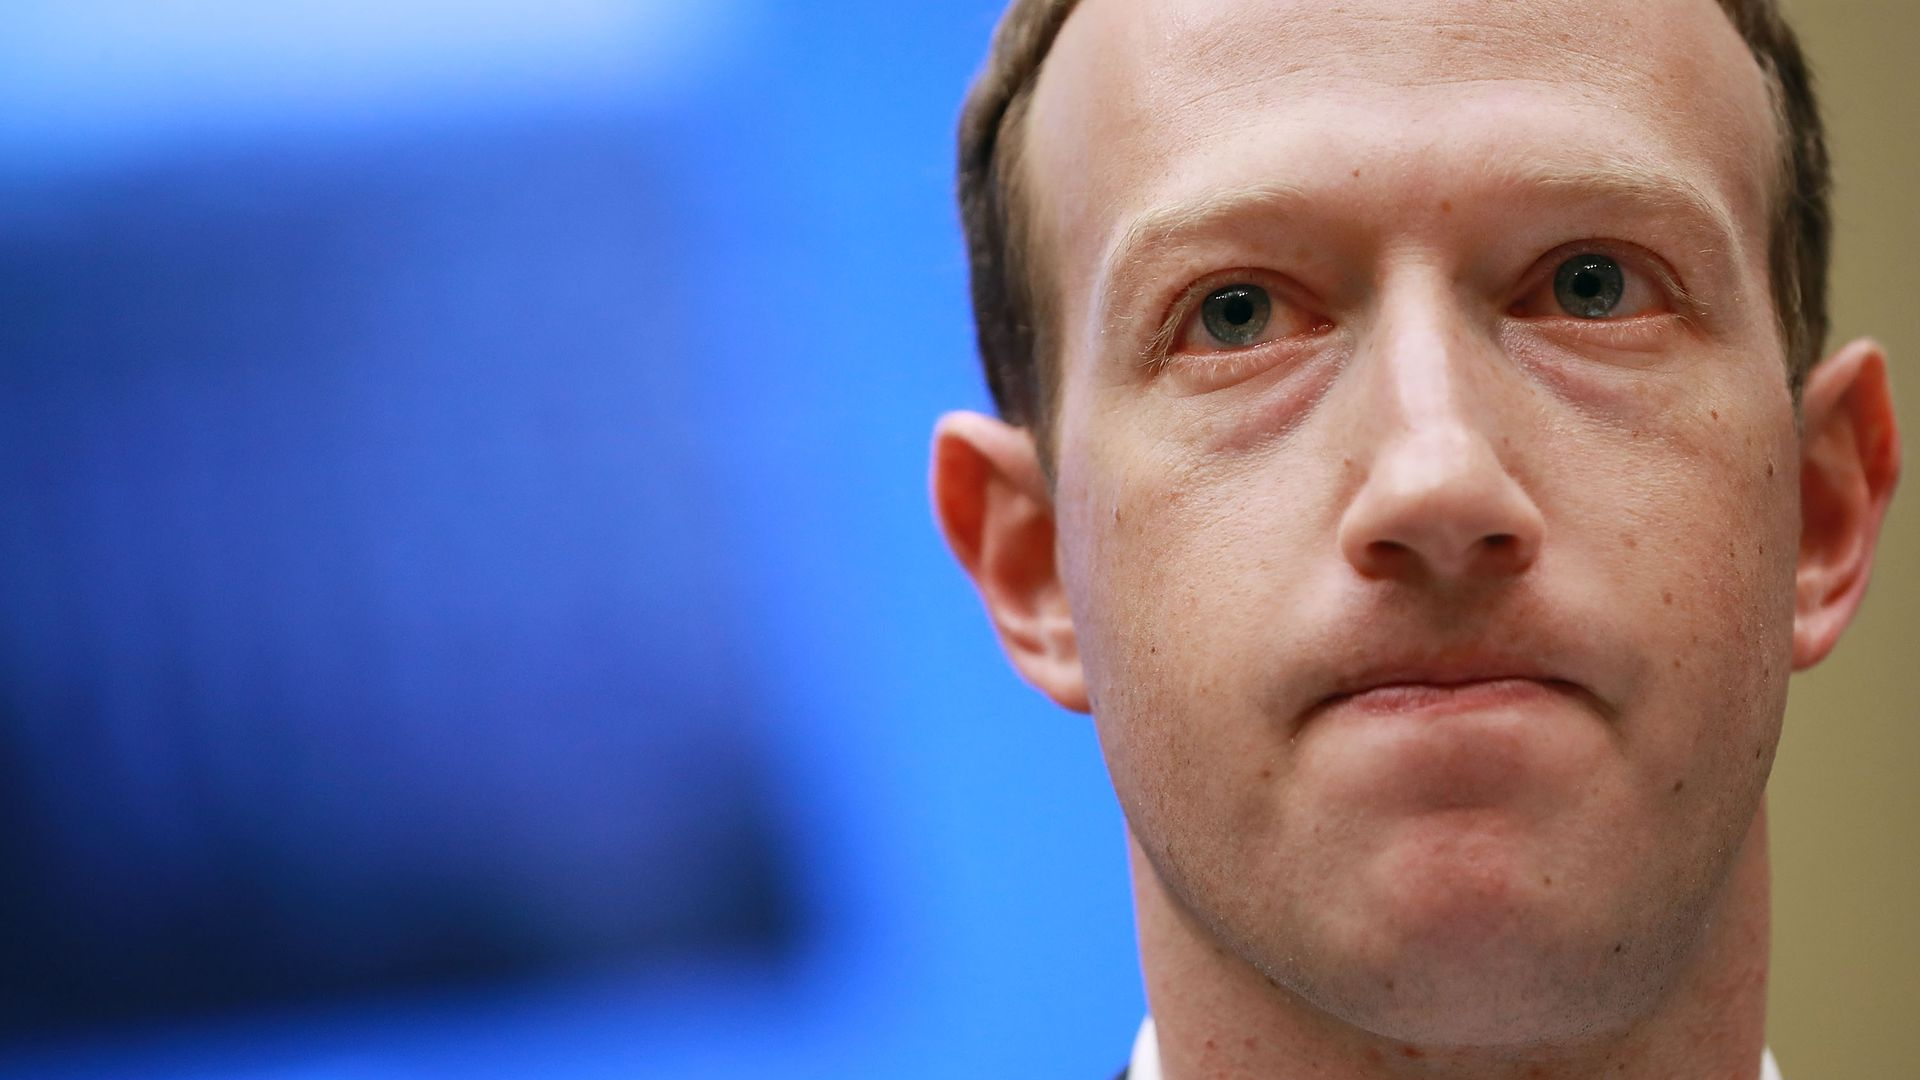 Facebook CEO Mark Zuckerberg grimaces